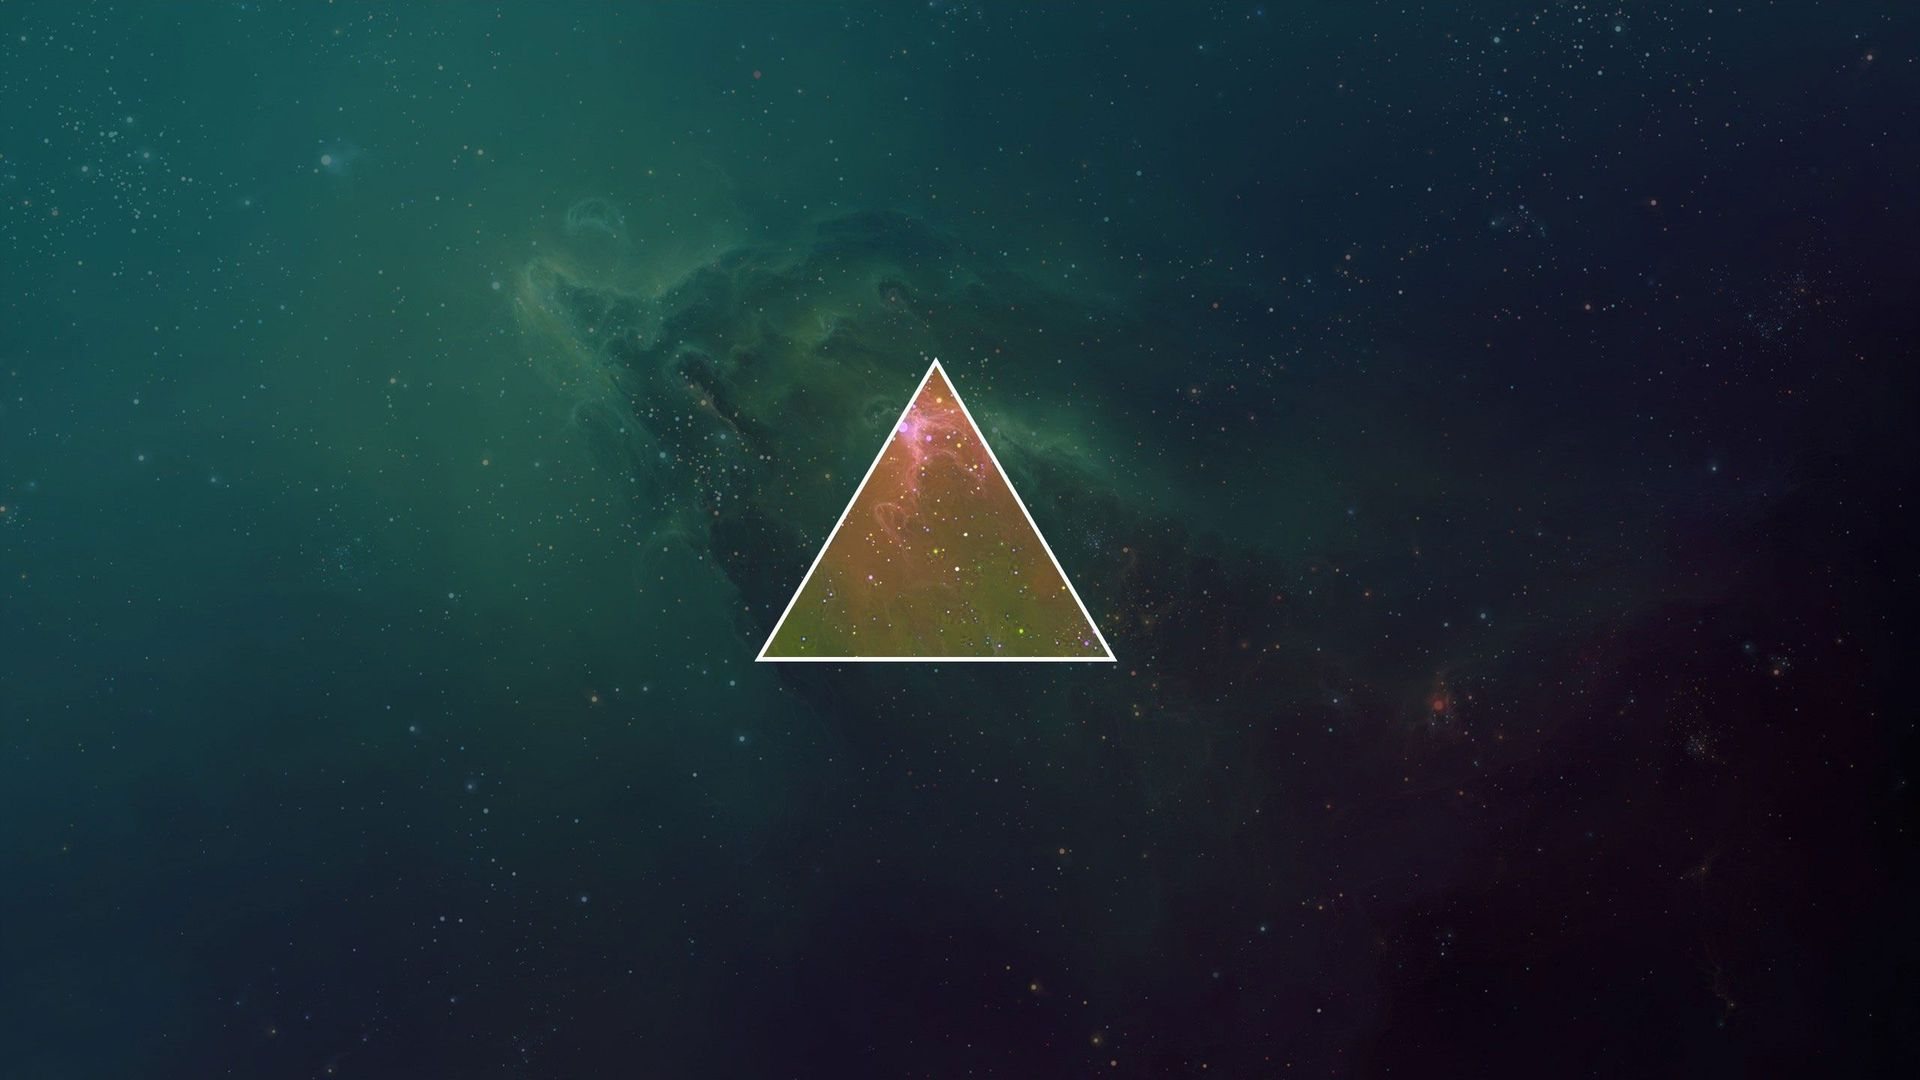 1920x1080p Wallpapers Group (88+)